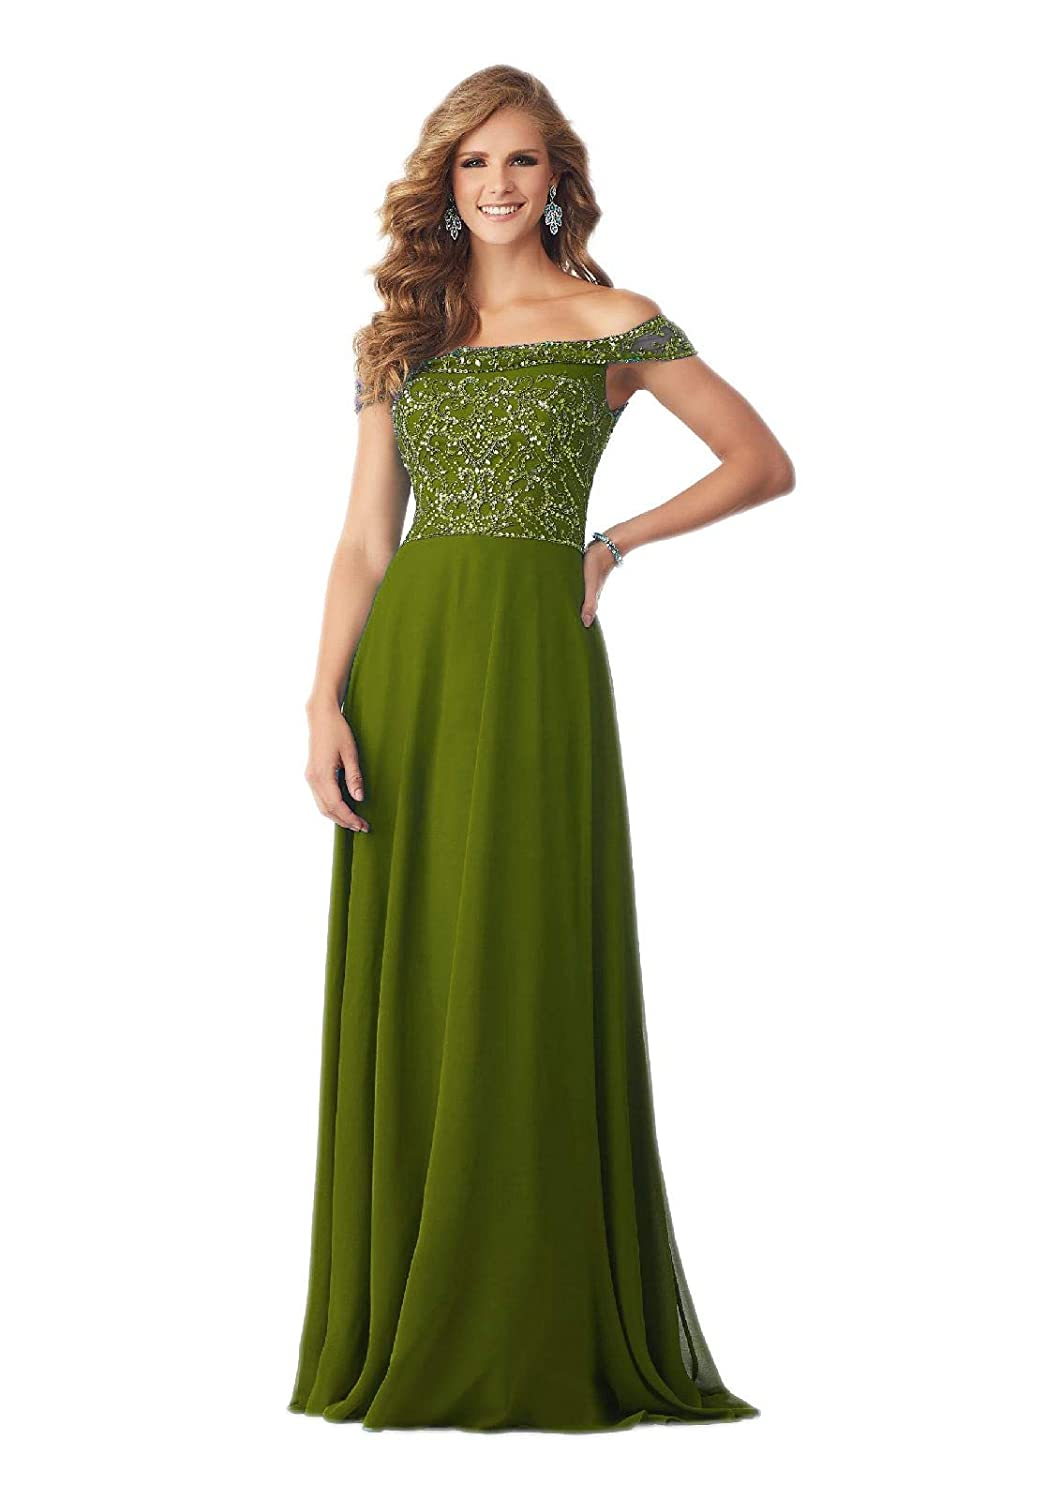 Women s Off The Shoulder Chiffon Beaded Dress Mother of The Bride Dresses  Plus Size Champagne at Amazon Women s Clothing store  080d1dda0b